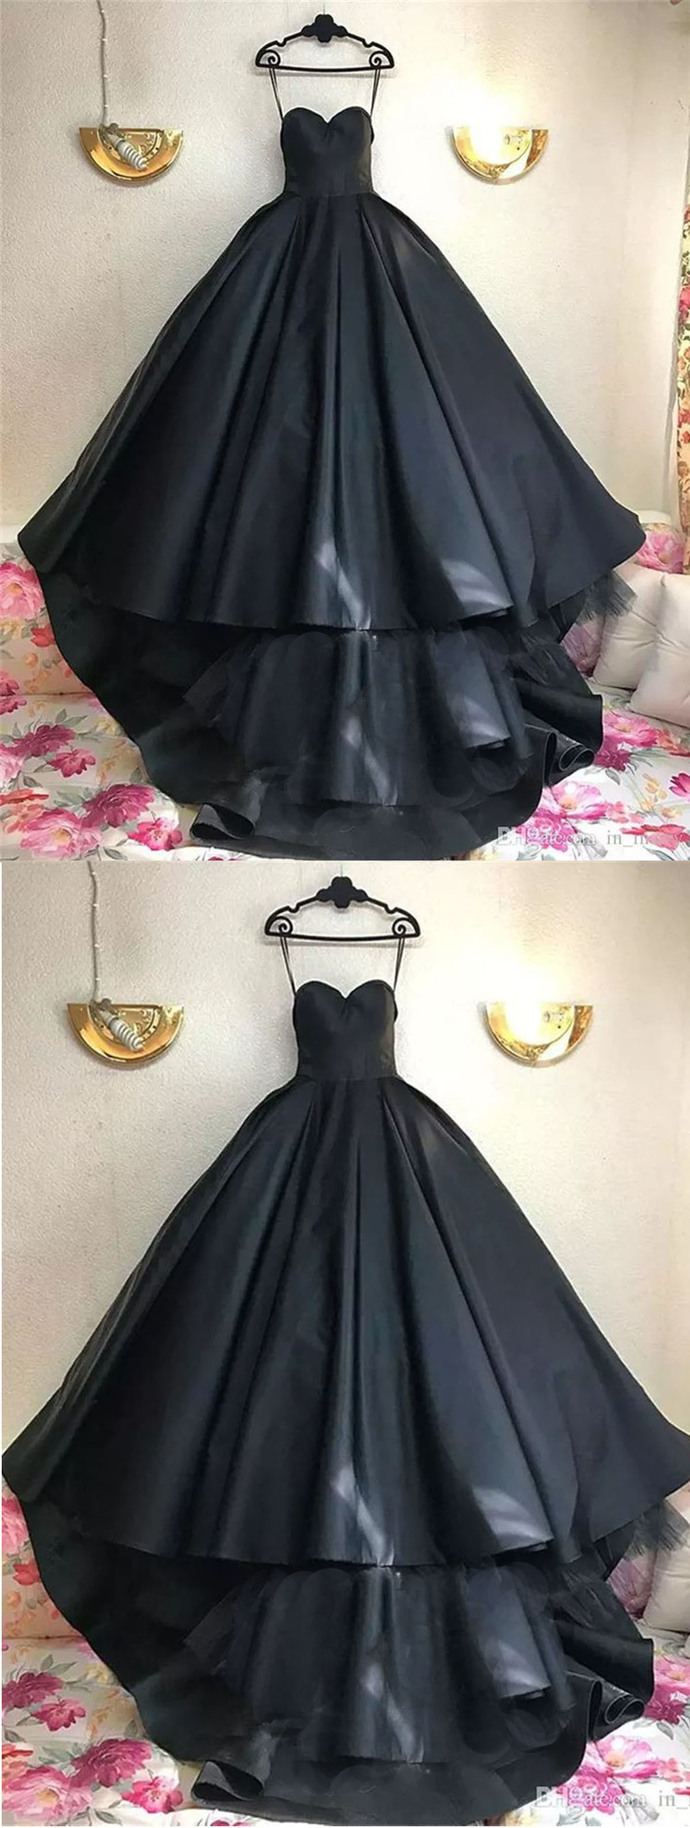 Simple black satin strapless high-low homecoming dress